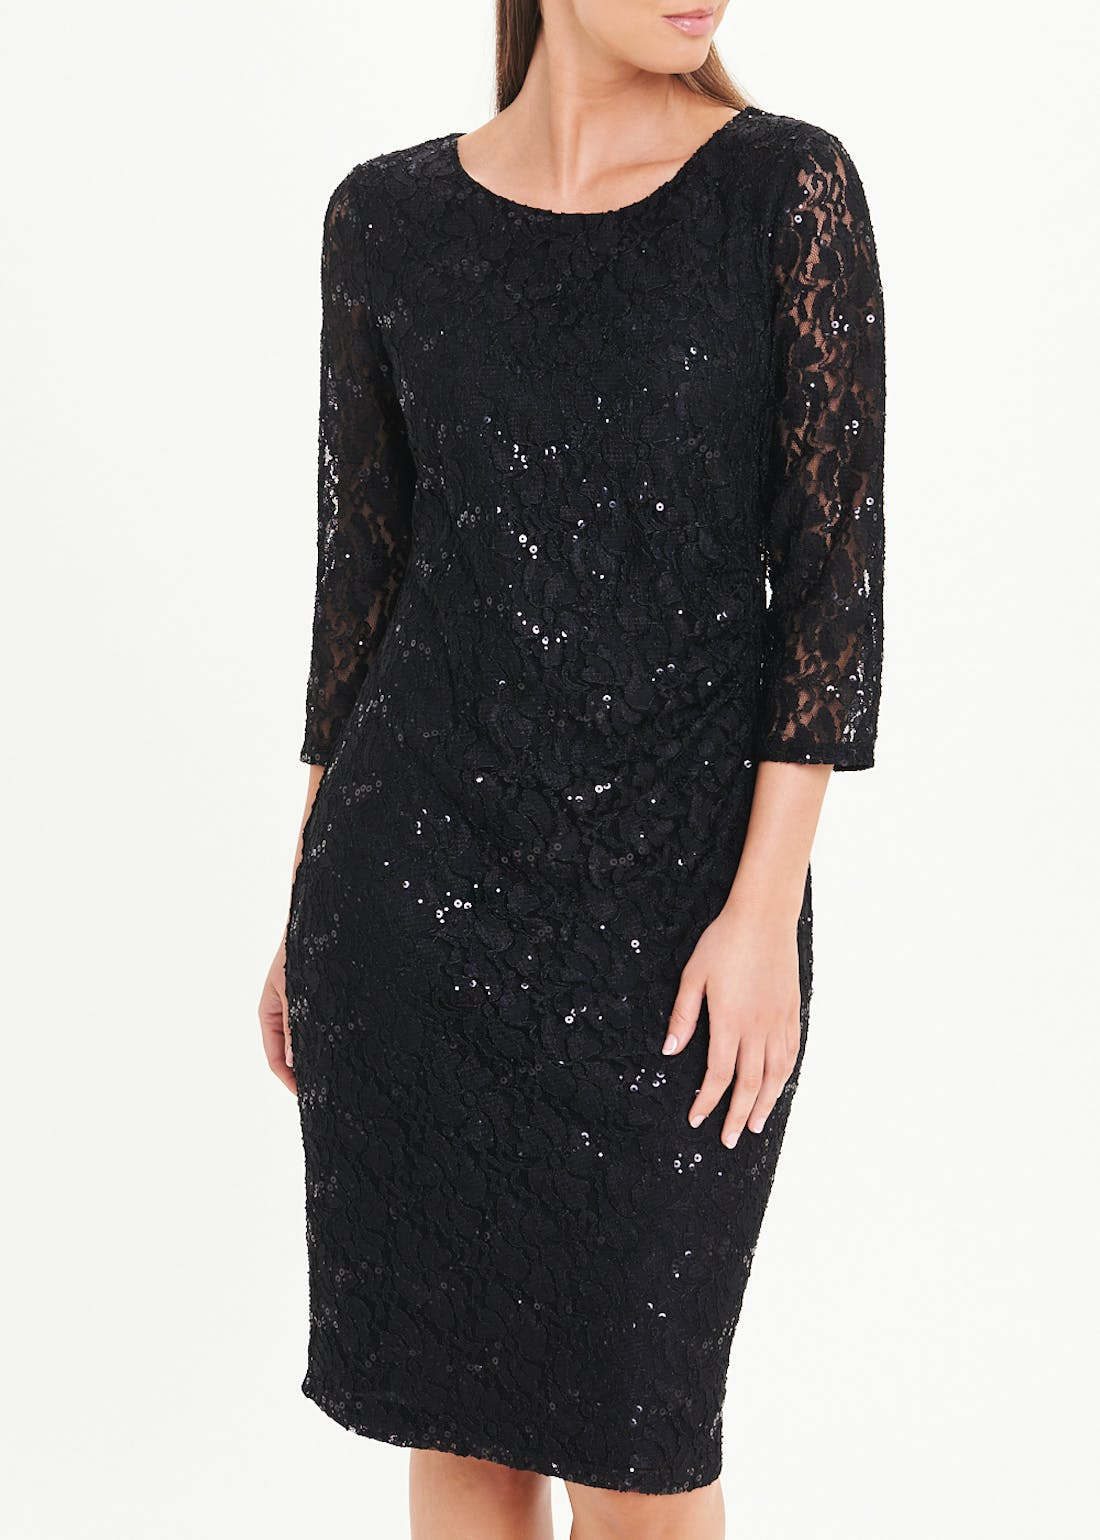 Papaya Classic Black Lace Bodycon Midi Dress